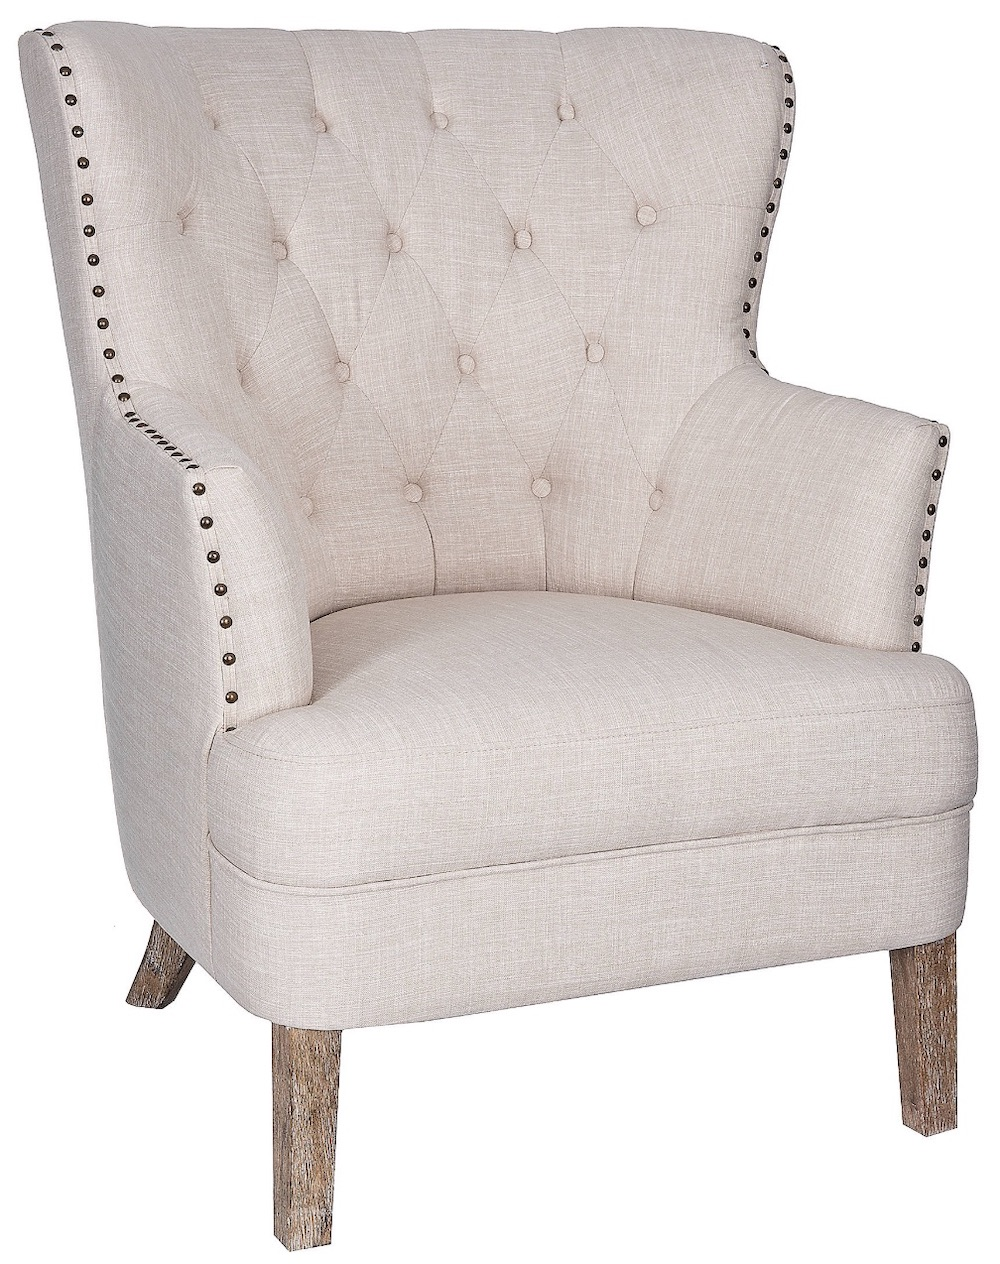 Chairs for Neutral Decors Cream Tufted Accent Chair #Chairs #AccentChairs #Decor #VintageDecor #FarmhouseDecor #NeutralDecor #Furniture